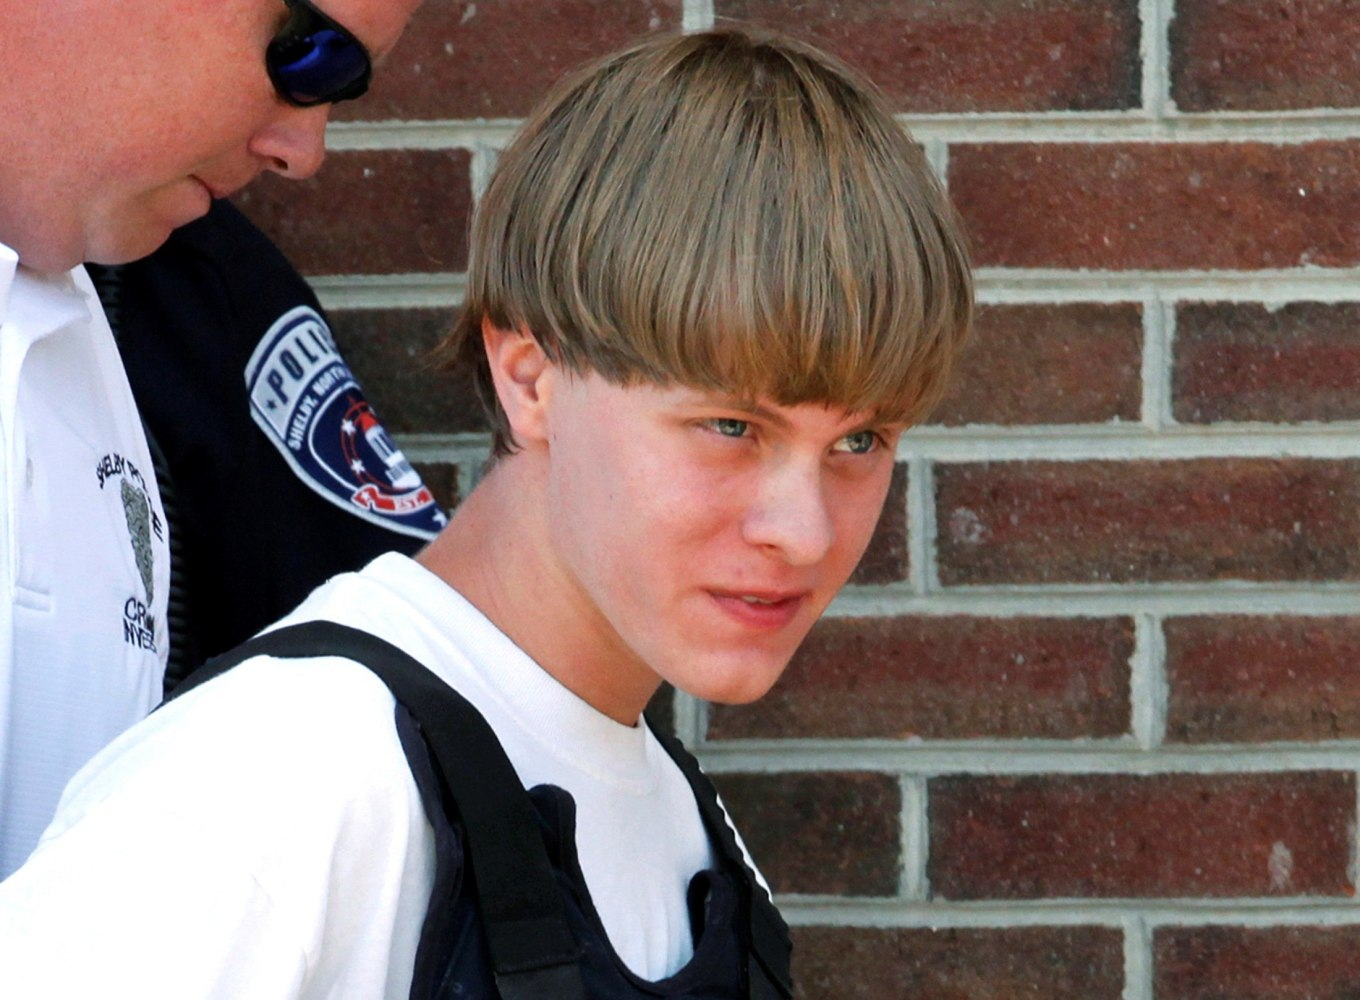 Psychologist Tried To Intervene With S C Church Gunman